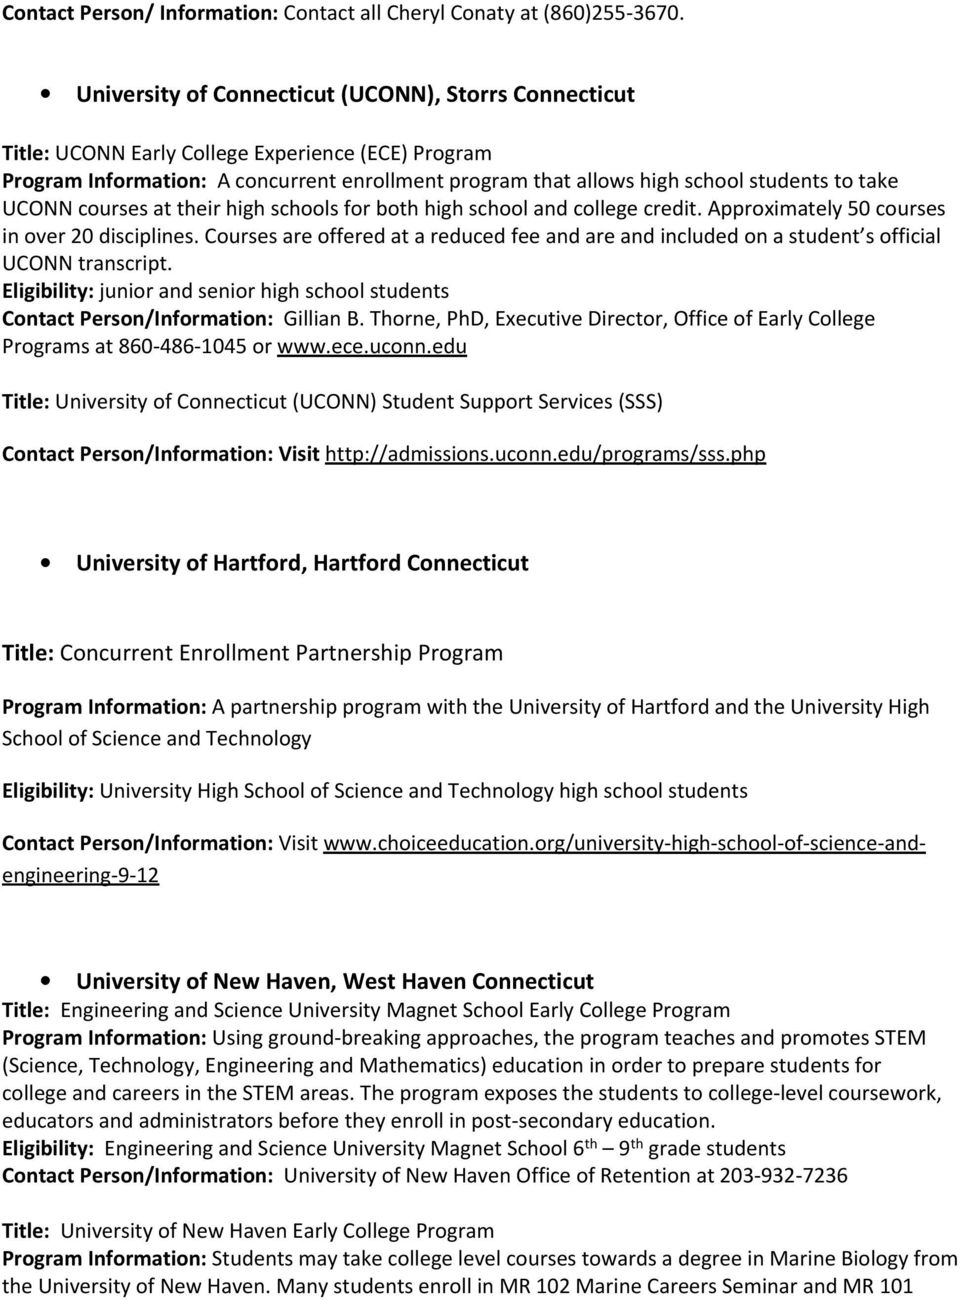 UCONN courses at their high schools for both high school and college credit. Approximately 50 courses in over 20 disciplines.